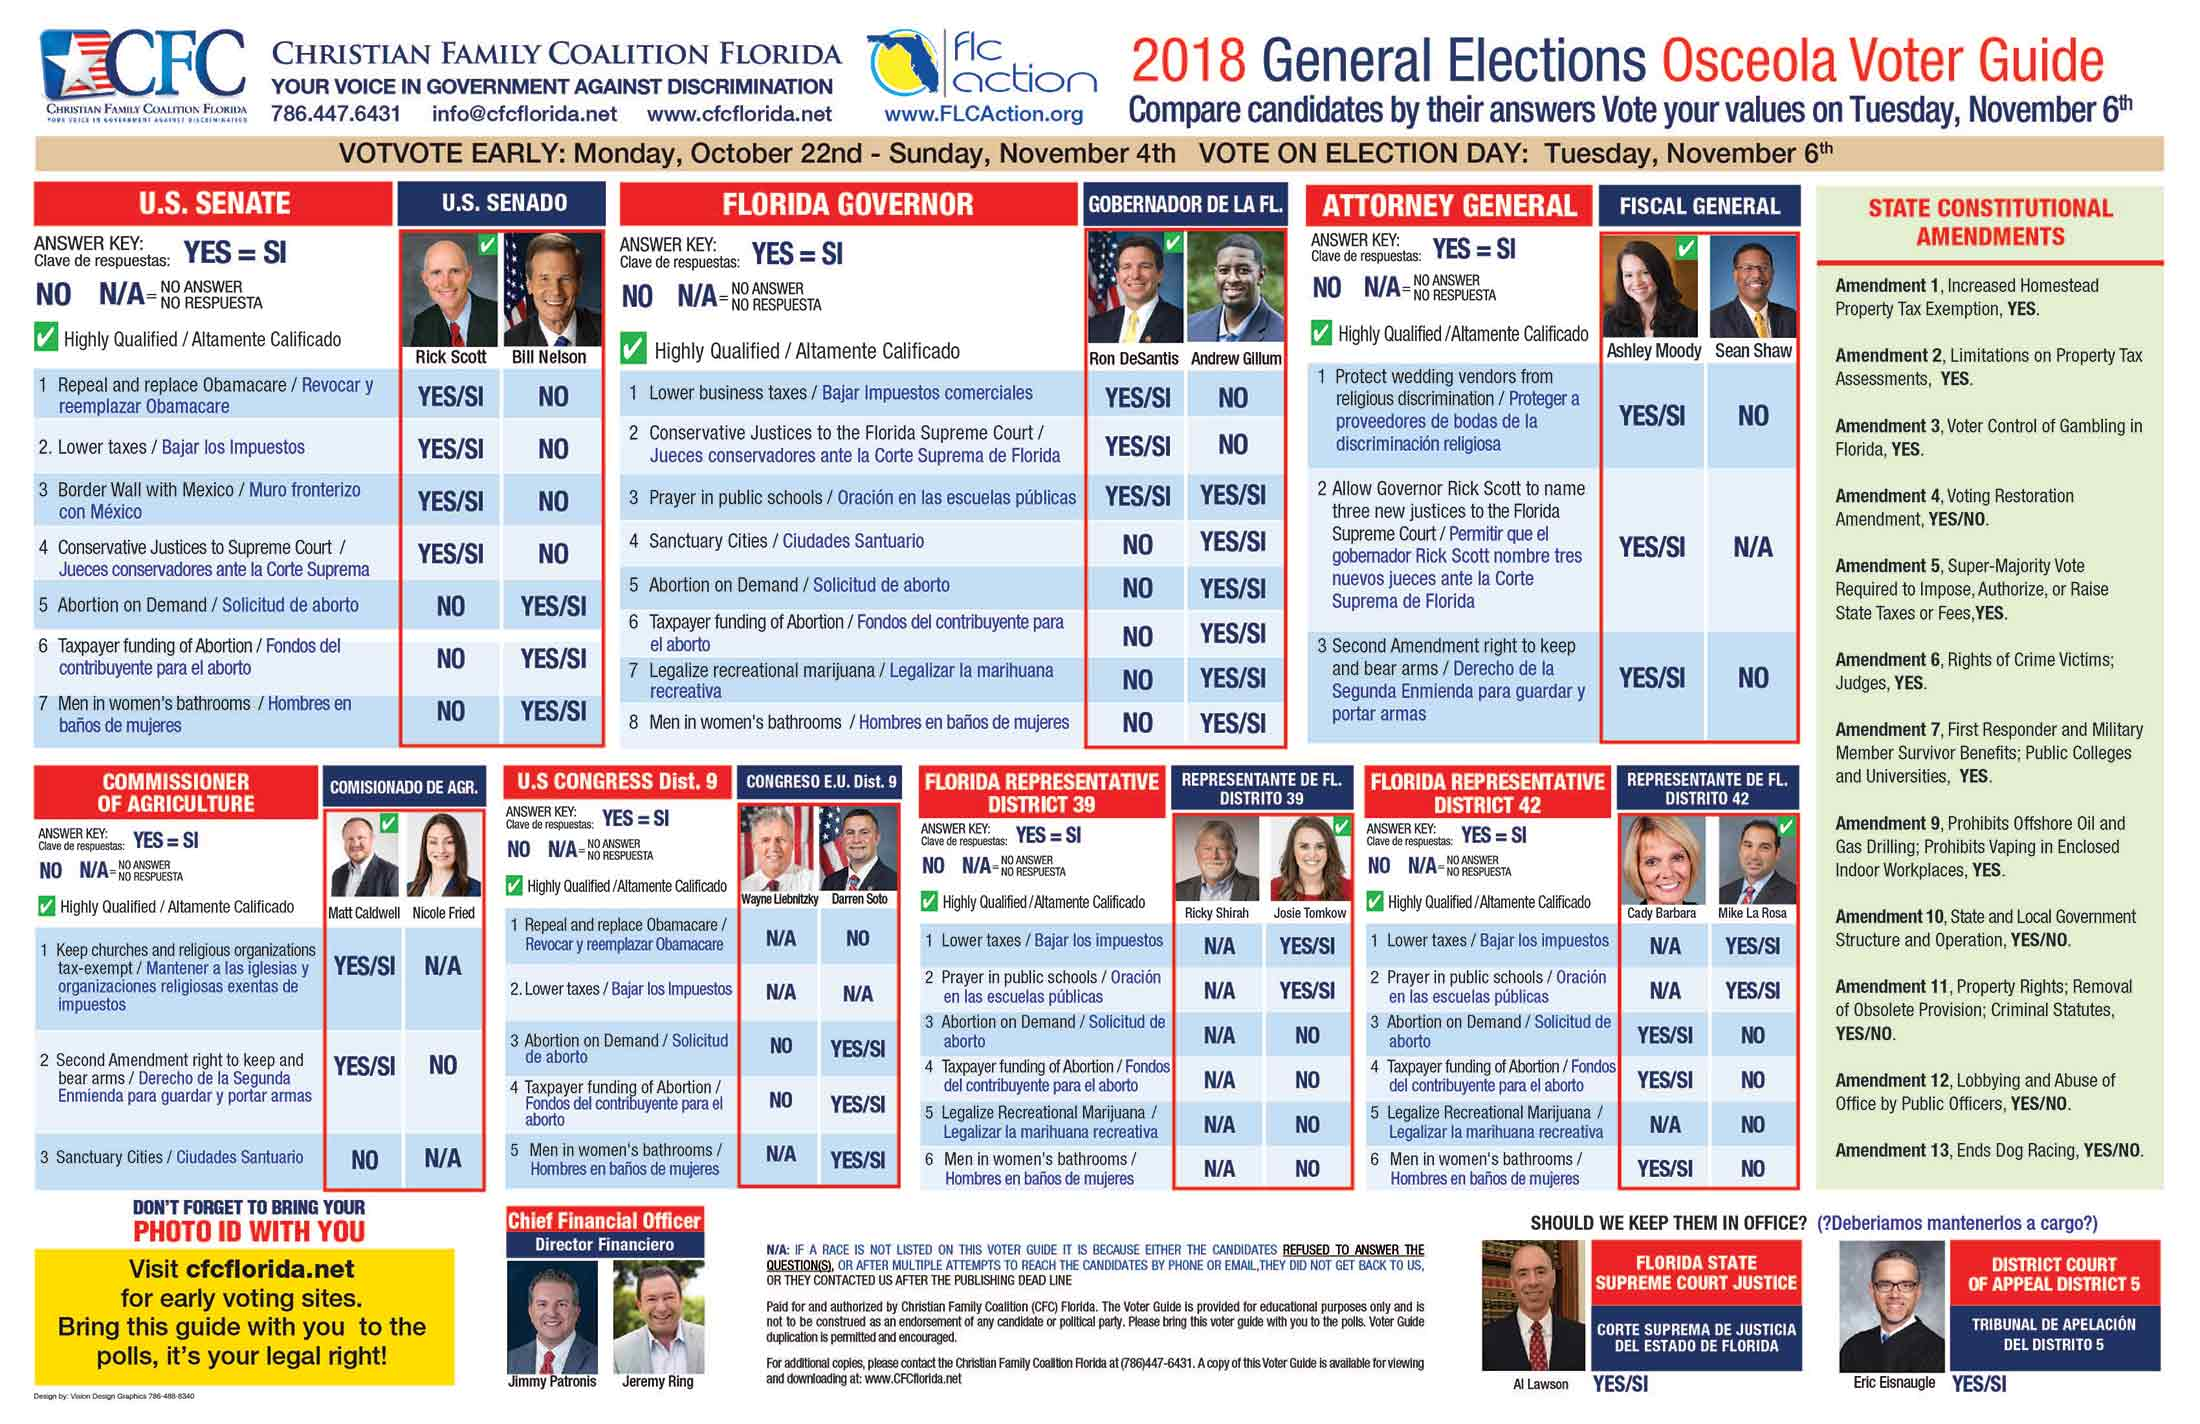 2018-osceola-voter-guide